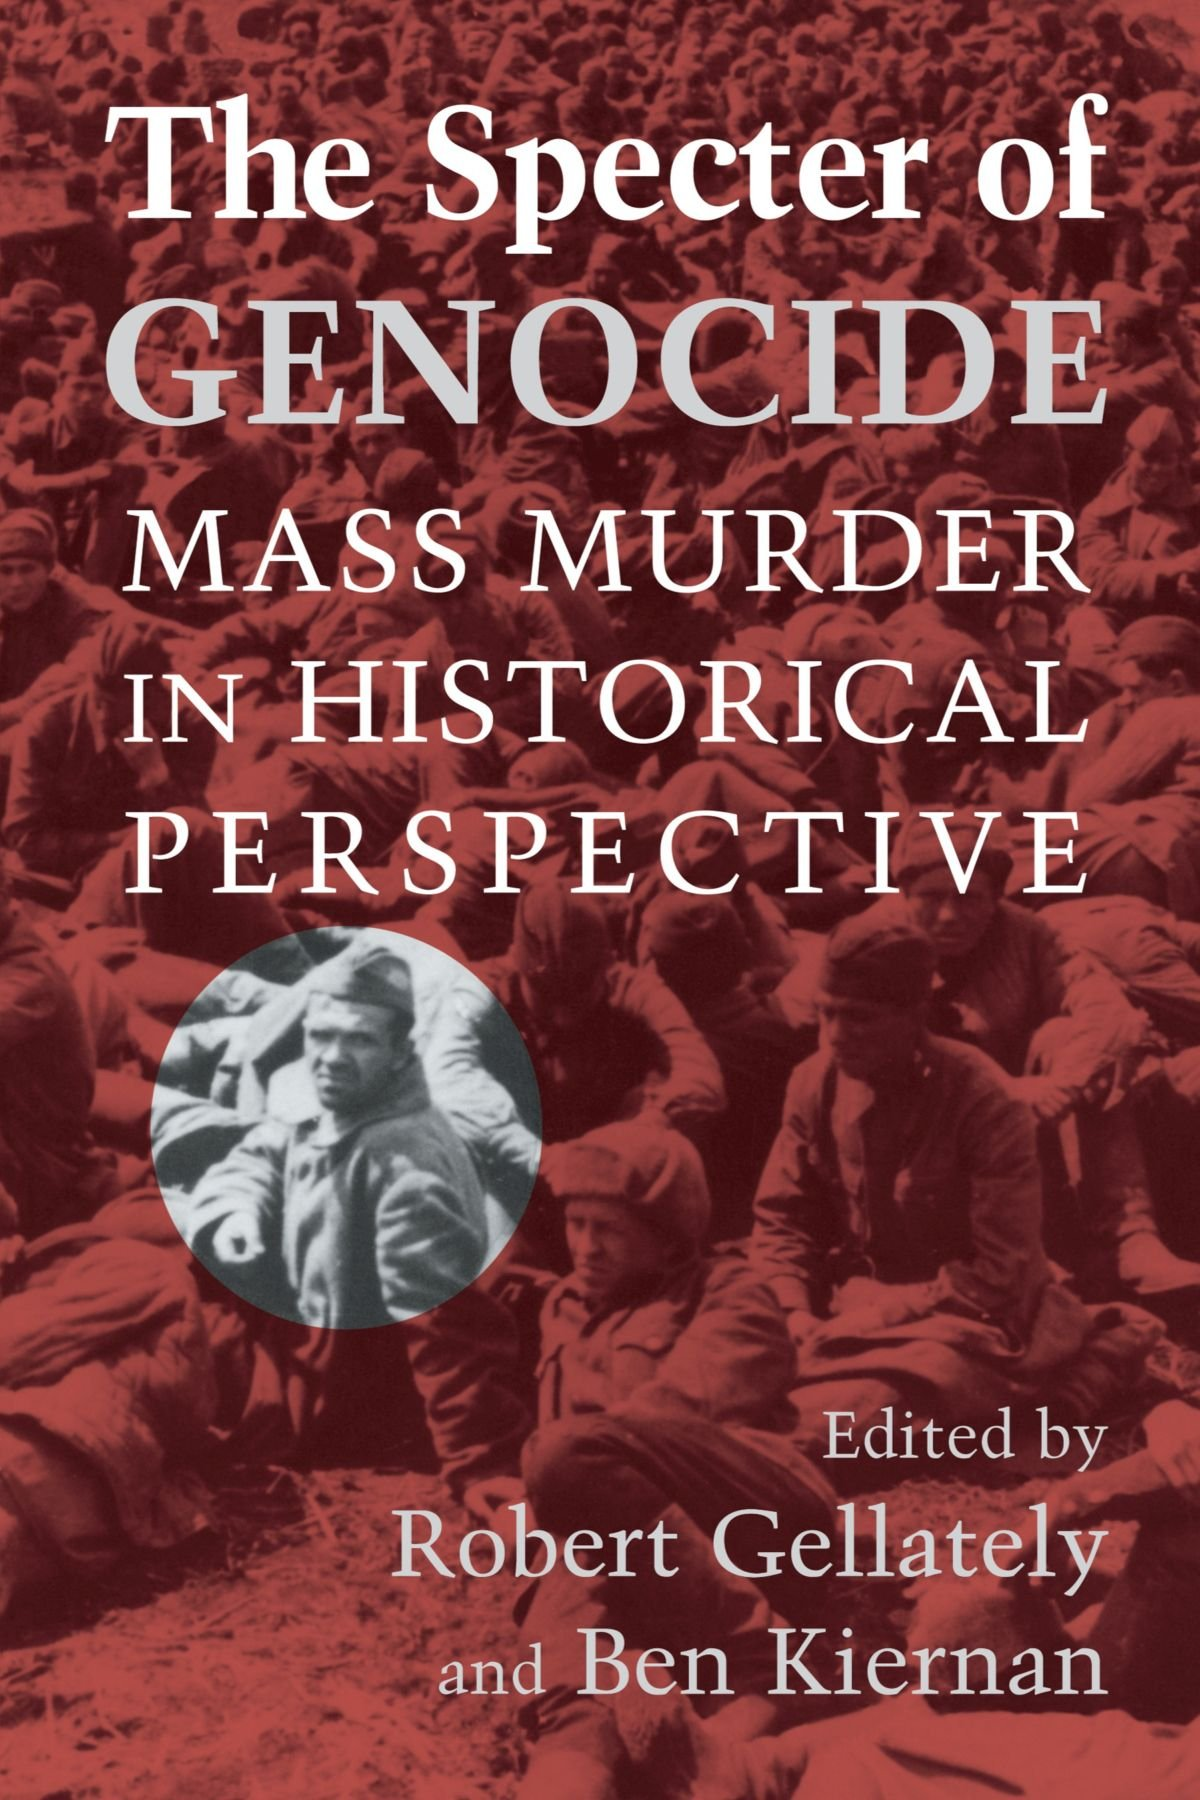 essays on genocide centuries of genocide essays and eyewitness  centuries of genocide essays and eyewitness accounts amazon co the specter of genocide mass murder in